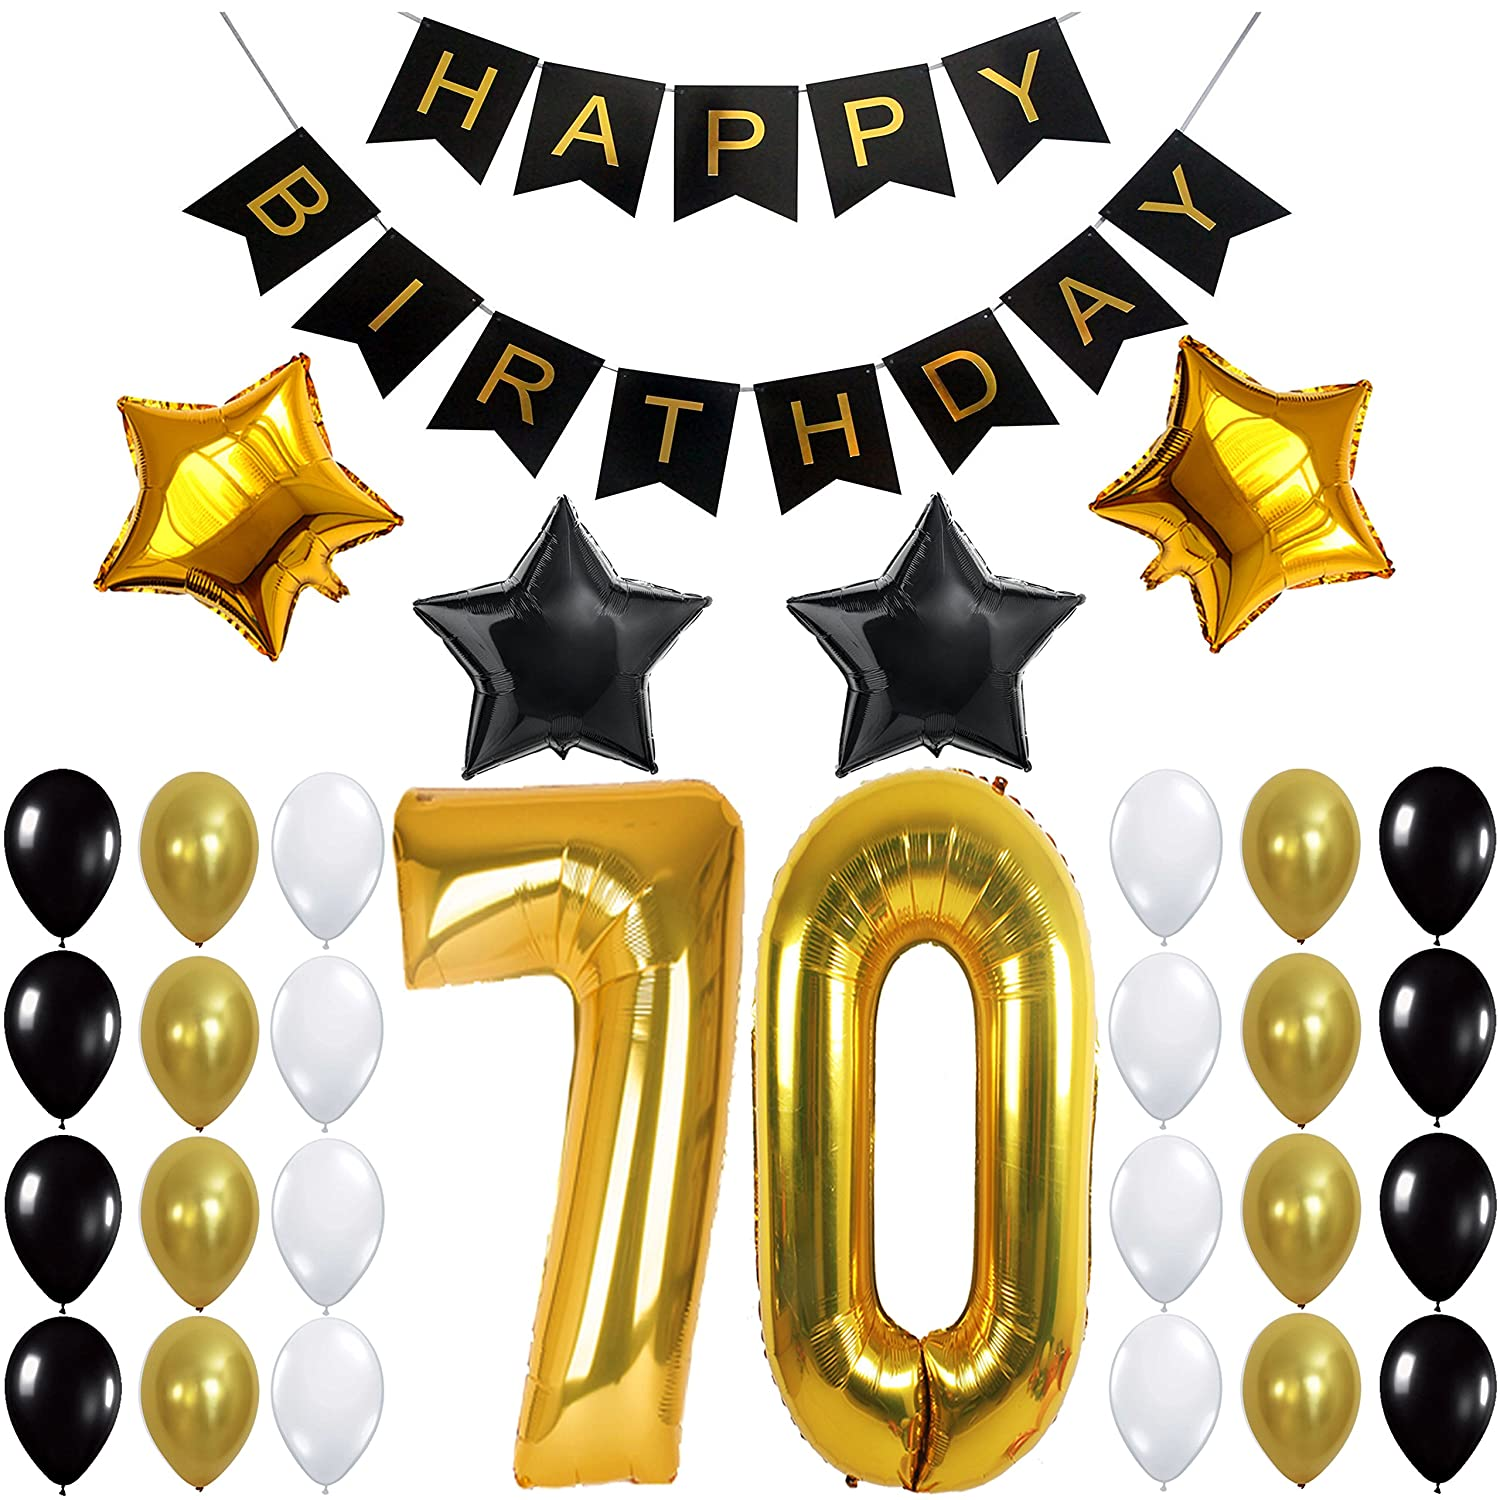 Amazon 70th birthday party decorations kit 70th birthday amazon 70th birthday party decorations kit 70th birthday party supplies 70 balloons number black and gold banner and balloons great 70 years biocorpaavc